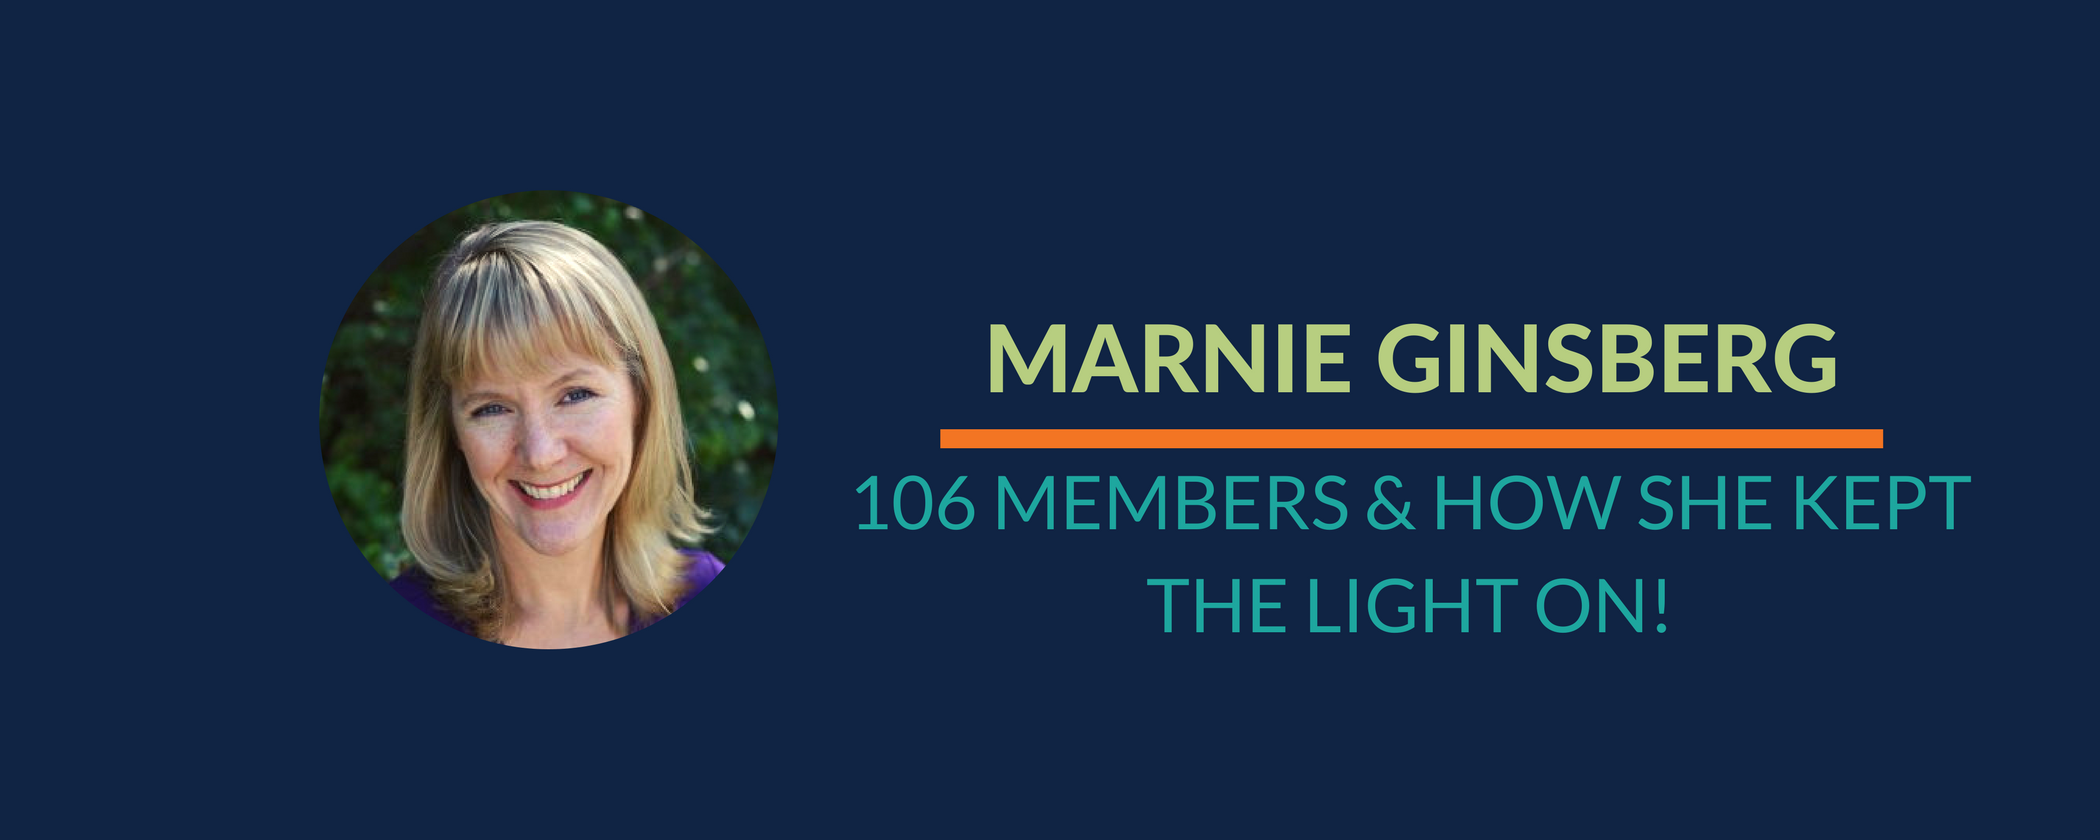 Success Story: Marnie's 106 members & how she kept the light on!